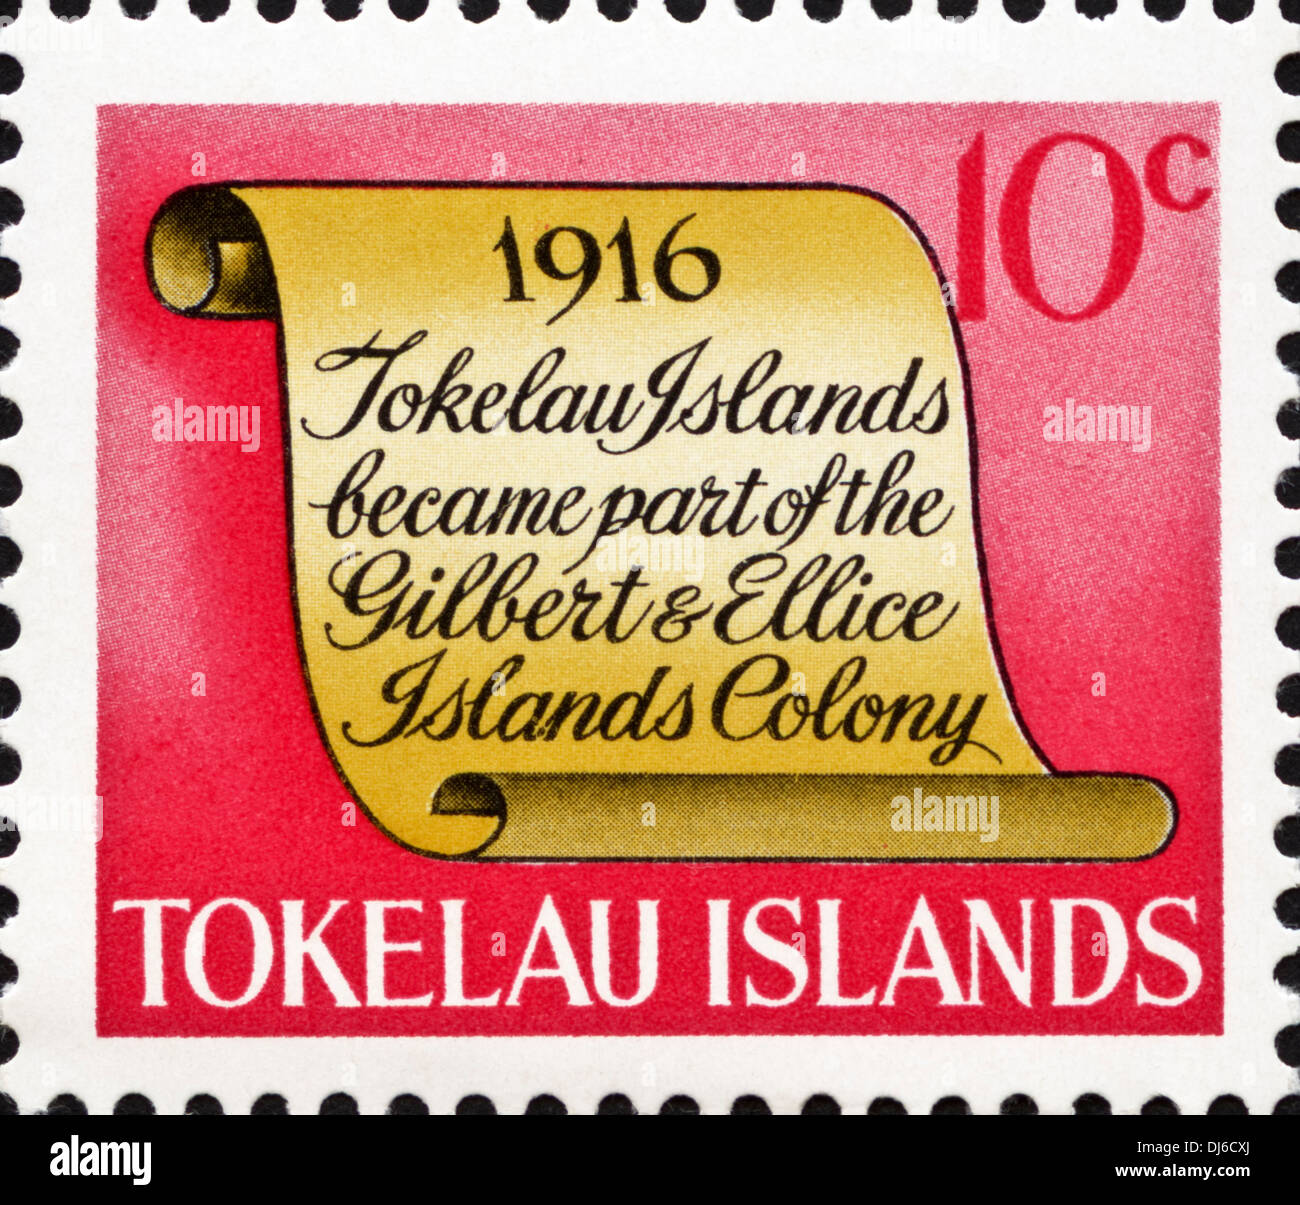 postage stamp Tokelau Islands 10c featuring 1916 significant date in island history dated 1969 - Stock Image